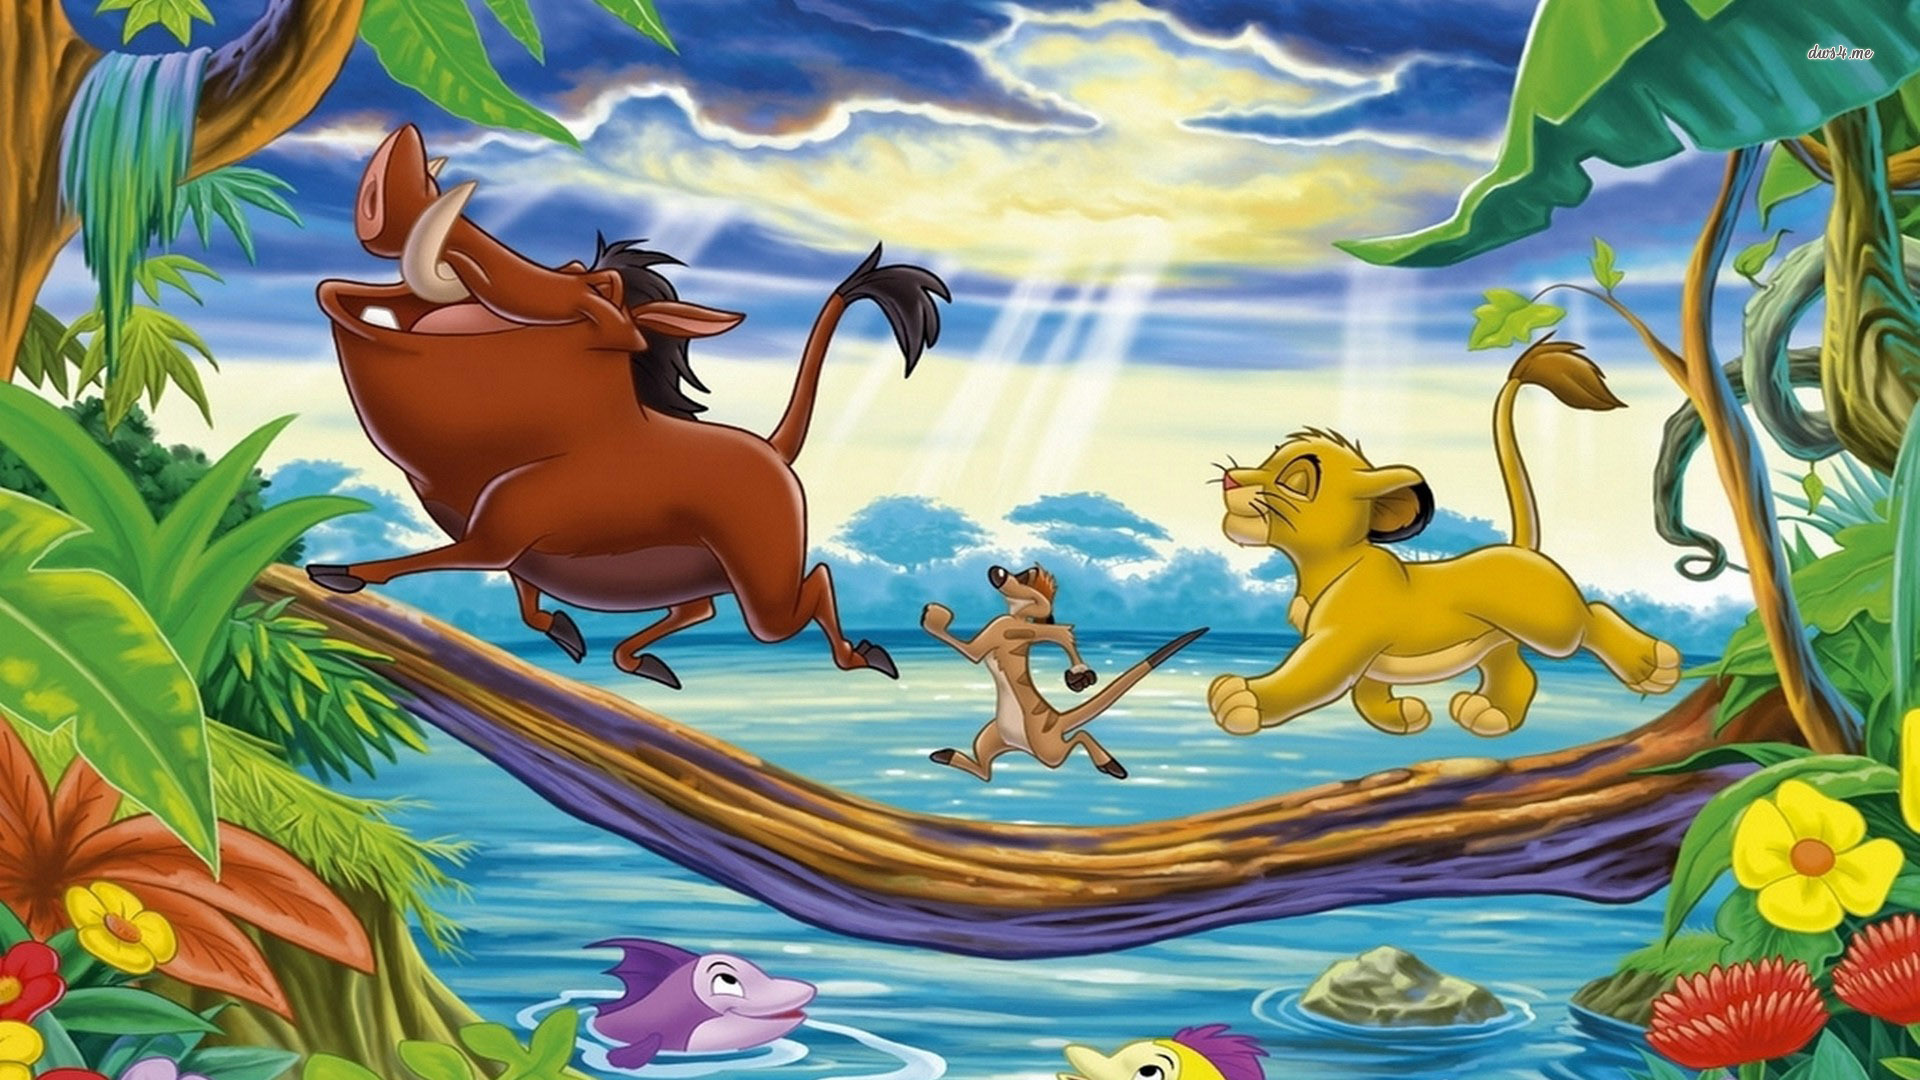 Timon and pumbaa hd wallpapers for desktop download.